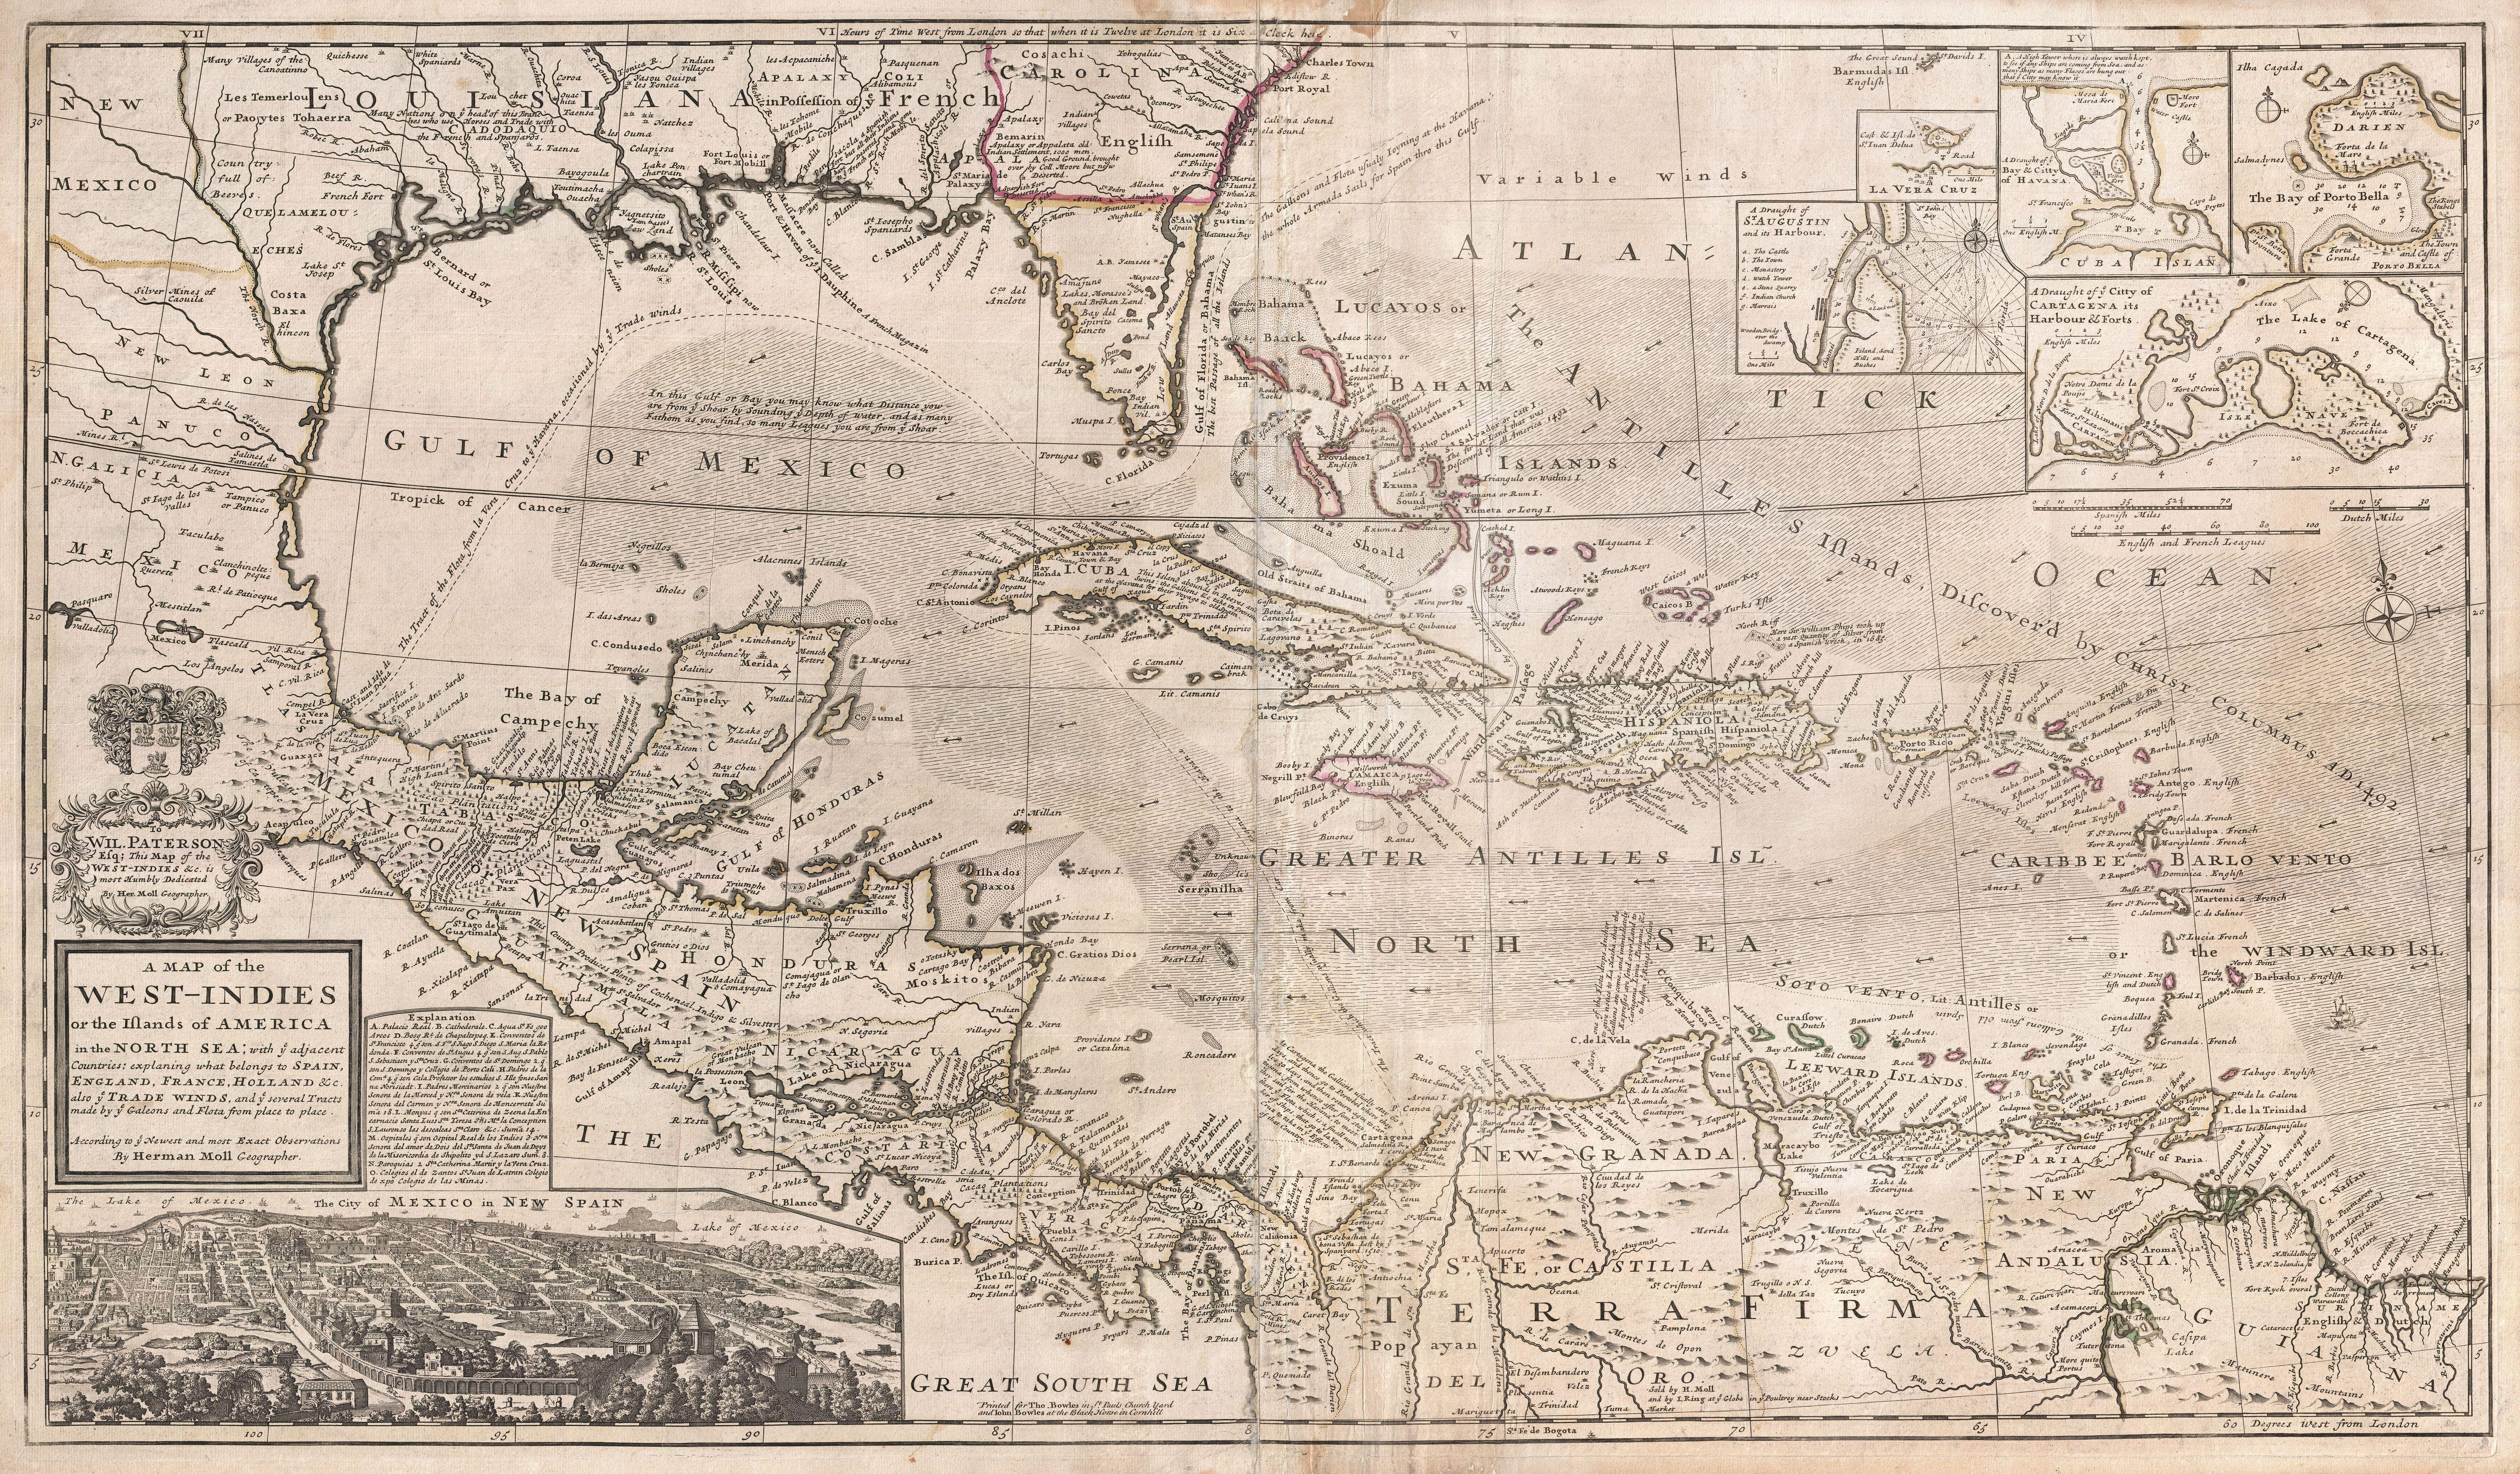 1732_Herman_Moll_Map_of_the_West_Indies,